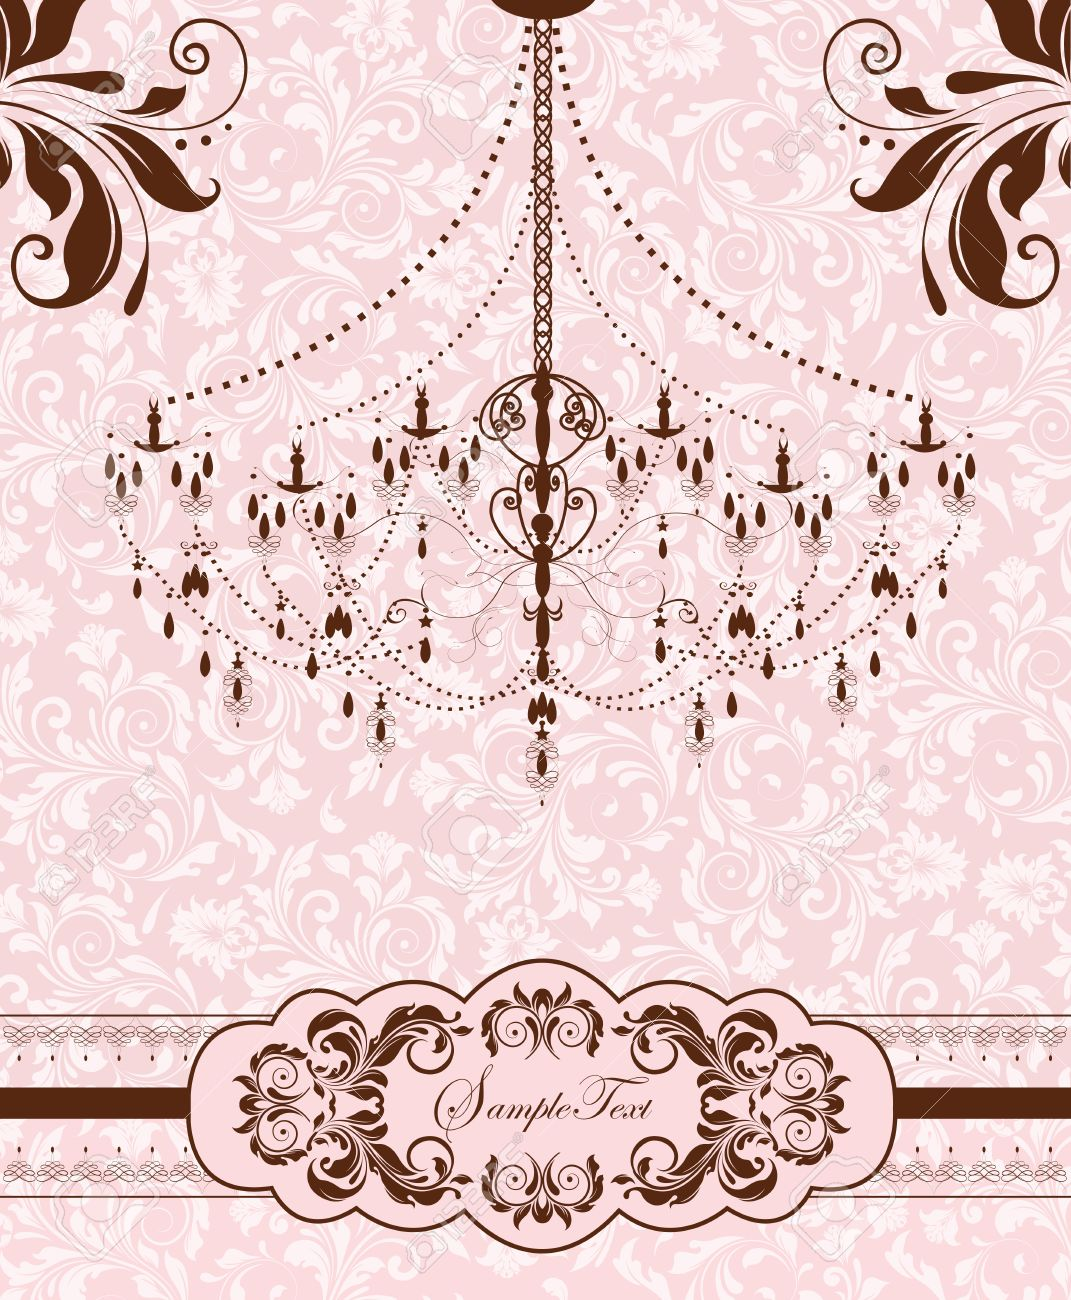 Vintage invitation card with ornate elegant abstract floral design vector vintage invitation card with ornate elegant abstract floral design chocolate brown flowers on pale pink and white background with chandelier stopboris Images